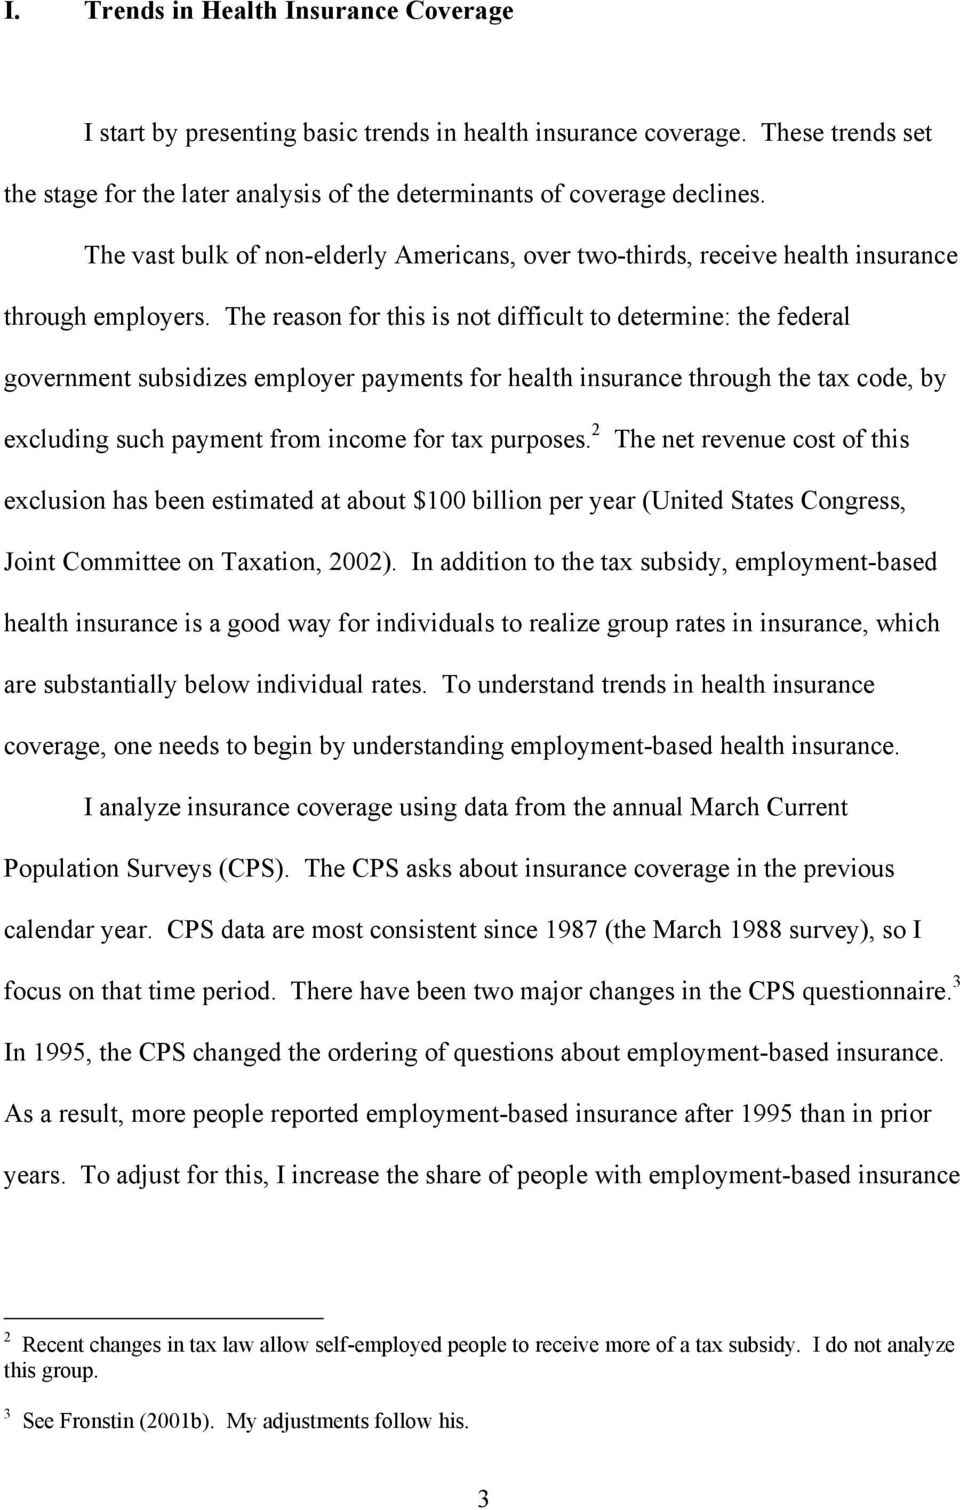 The reason for this is not difficult to determine: the federal government subsidizes employer payments for health insurance through the tax code, by excluding such payment from income for tax